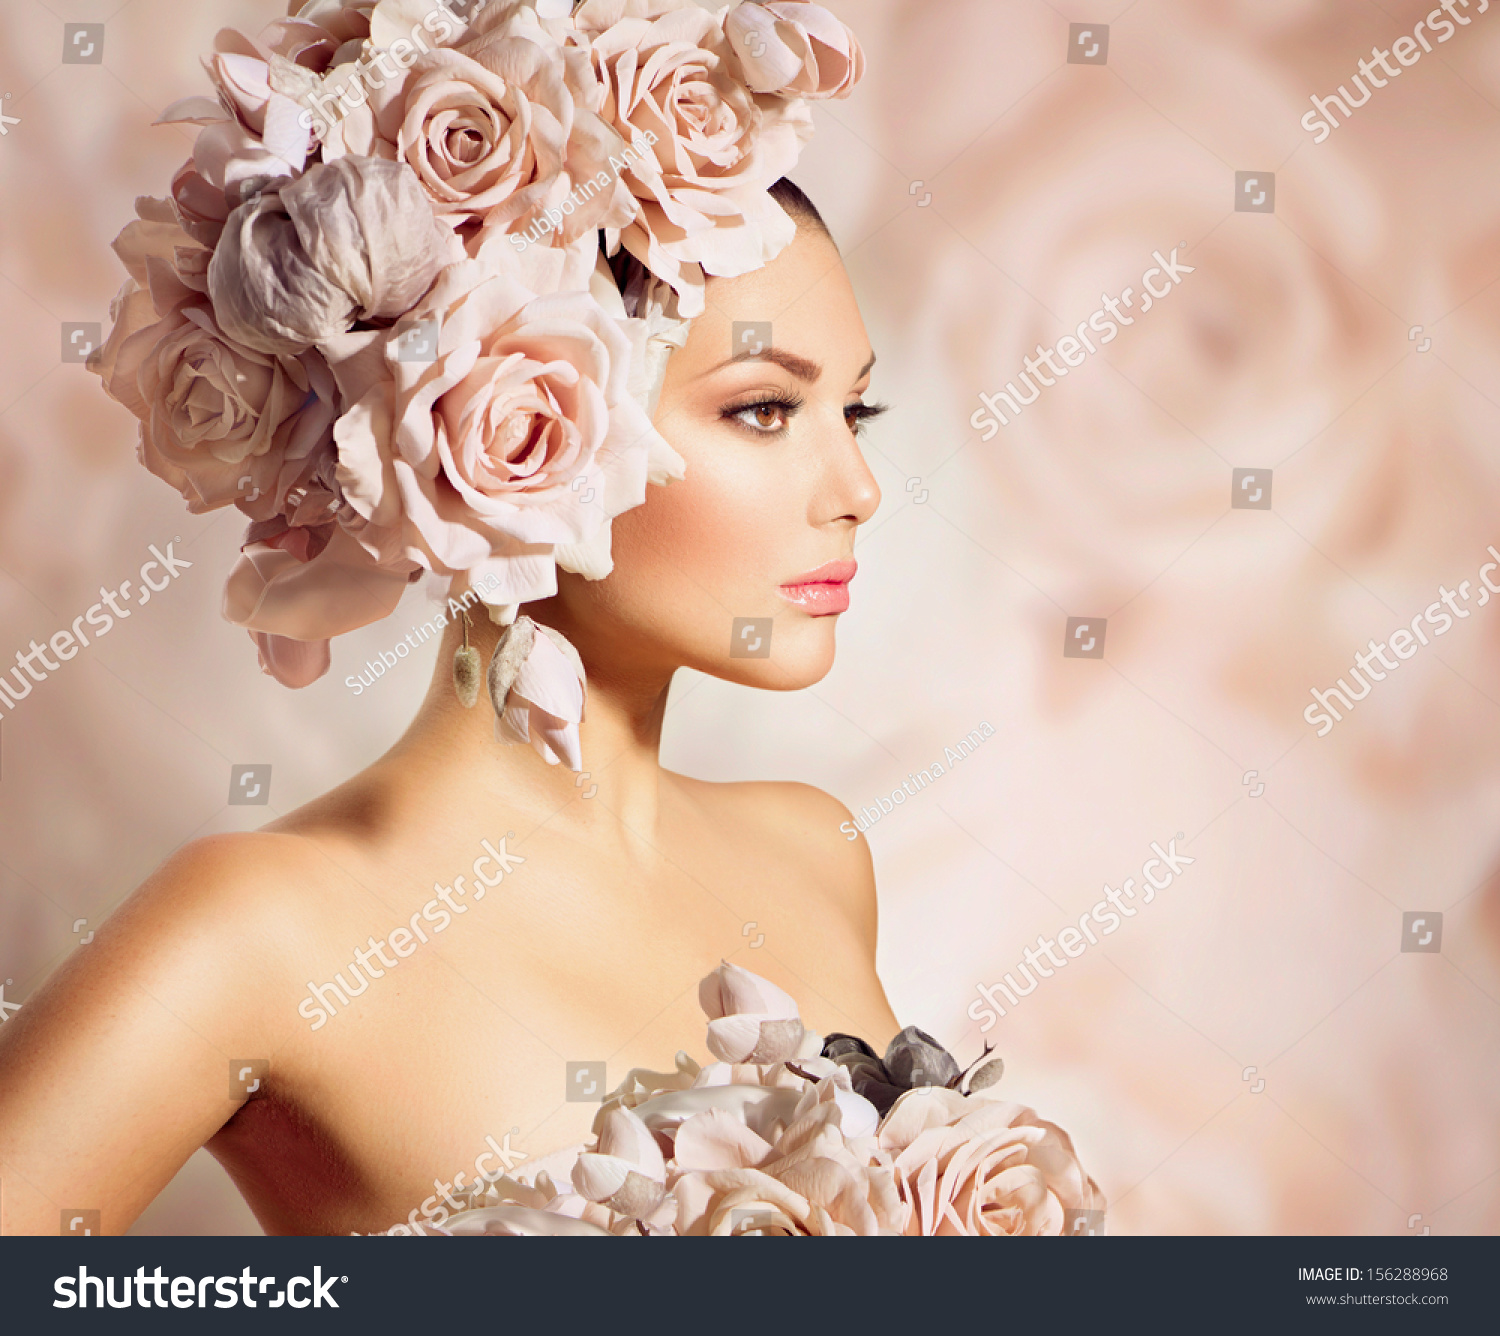 Fashion Beauty Model Girl Flowers Her Stock Photo